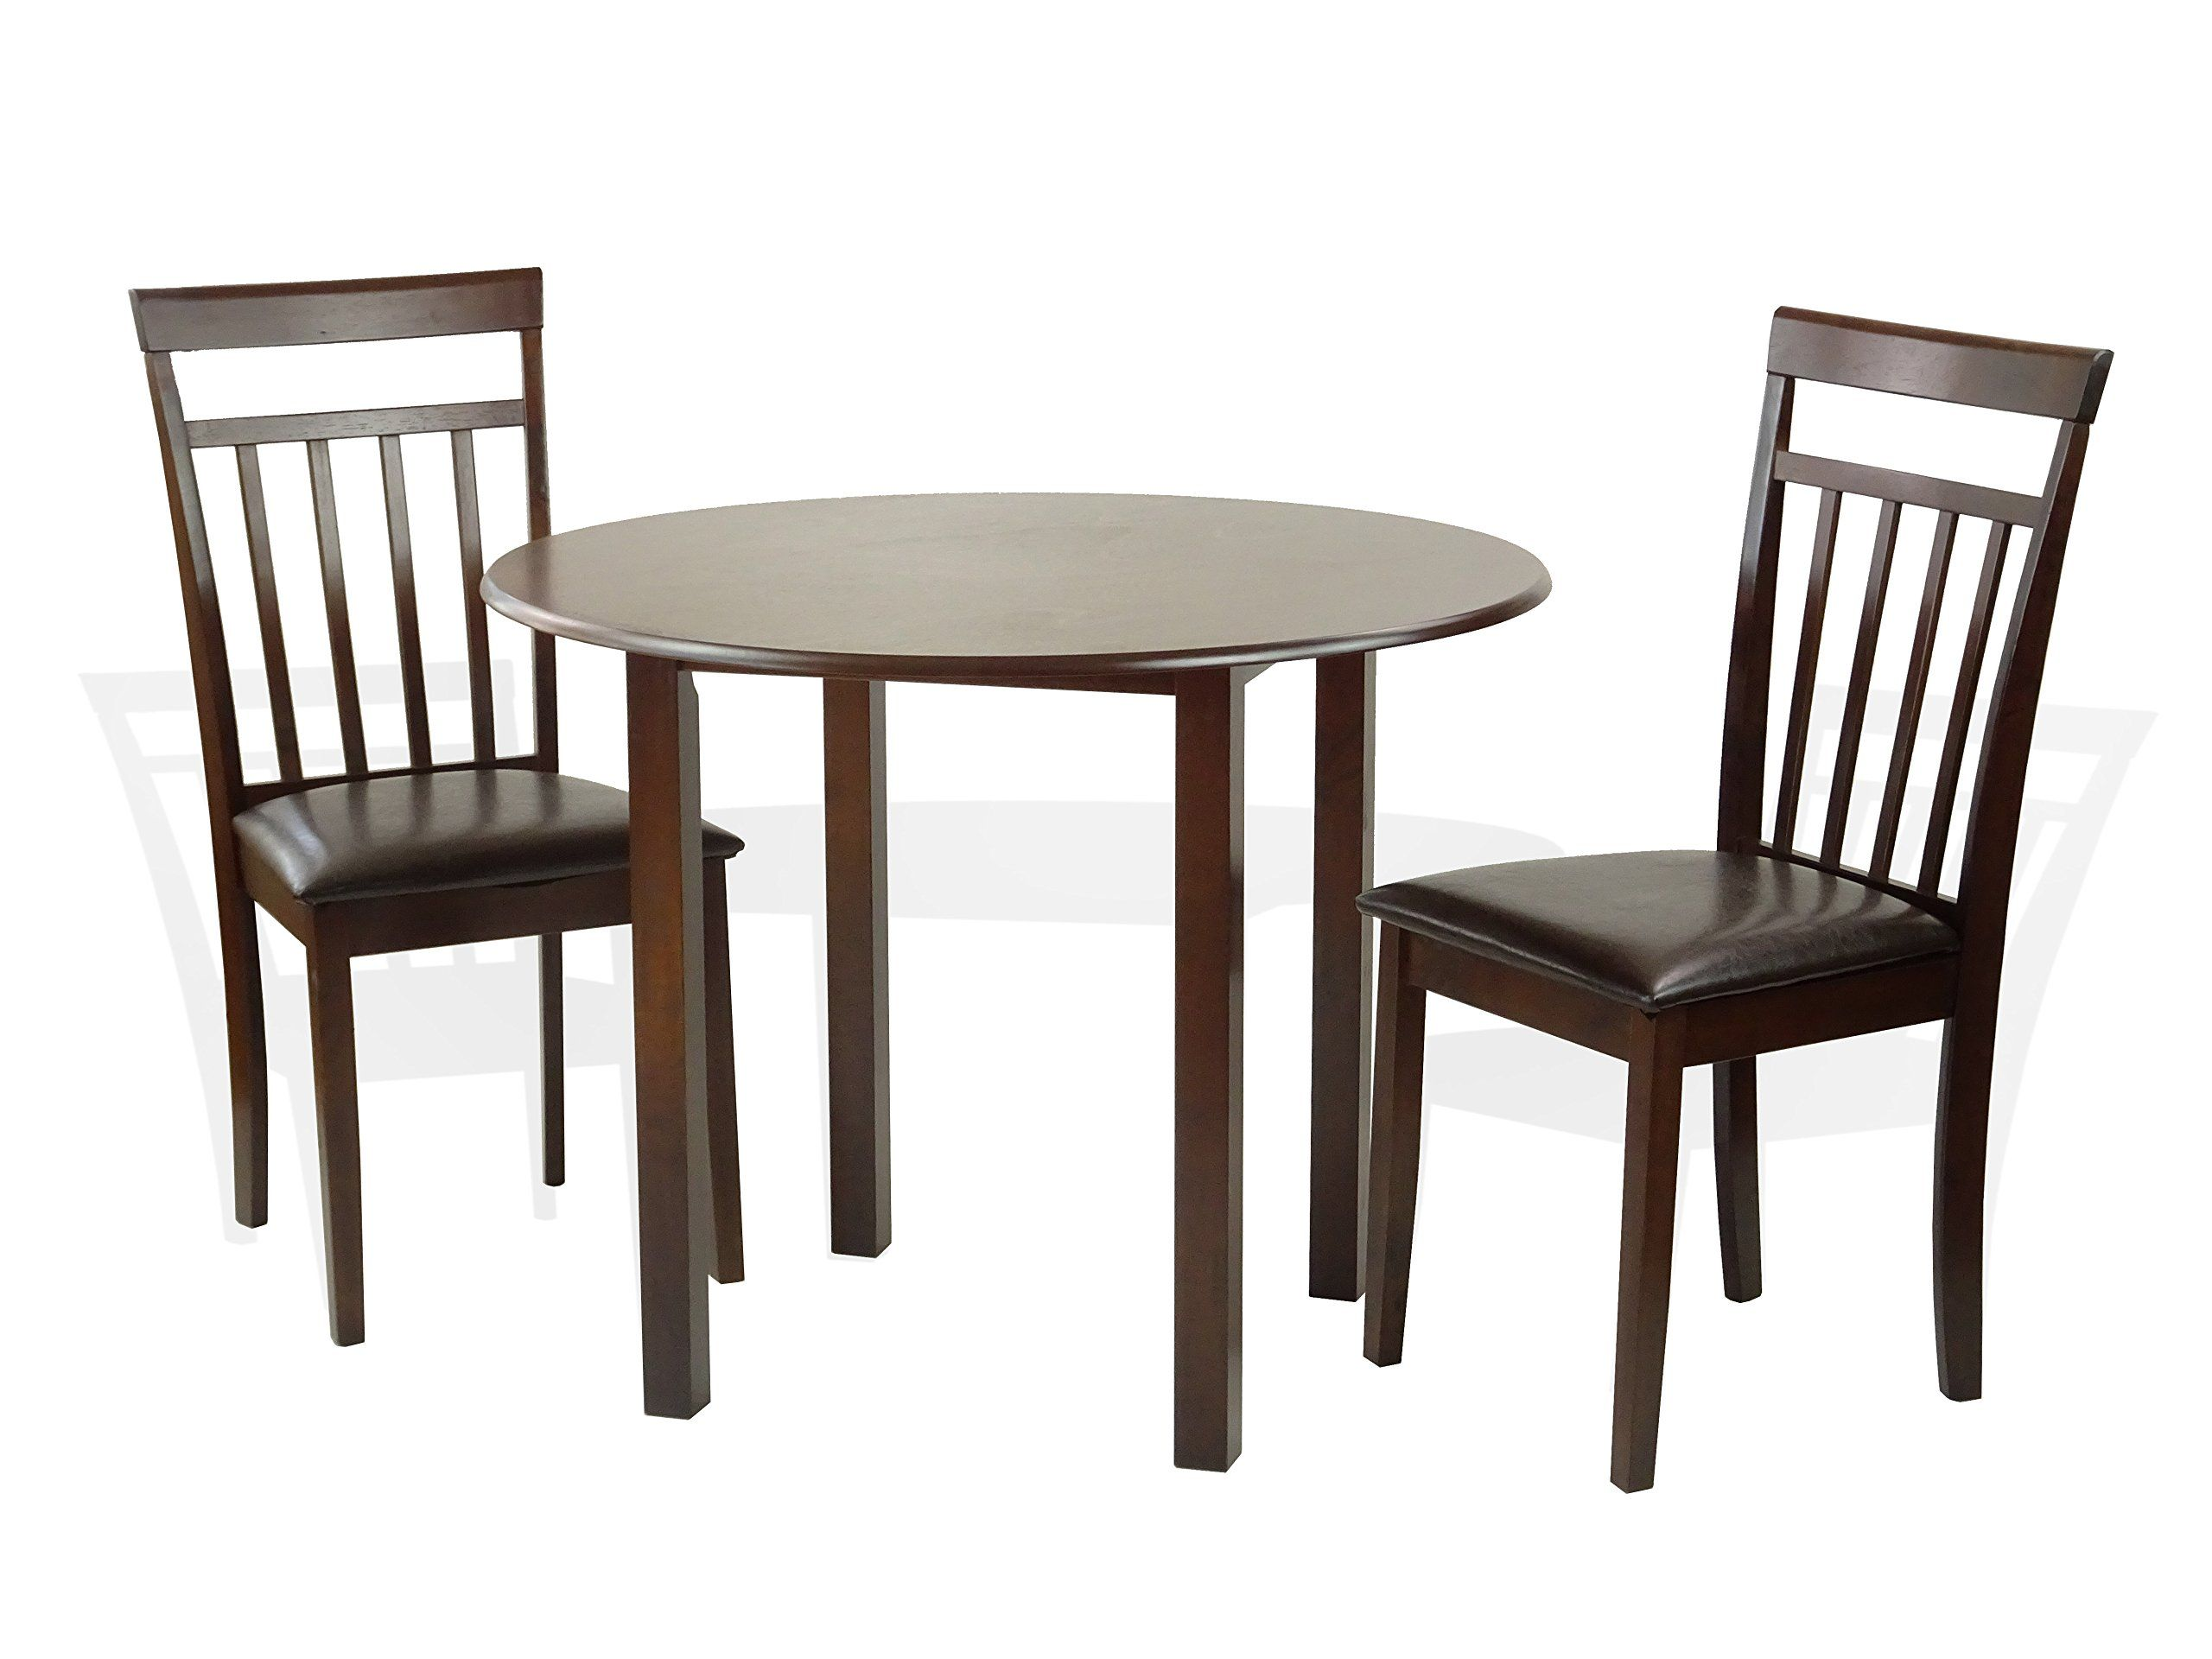 sunbear furniture dining kitchen set of 3 round table and